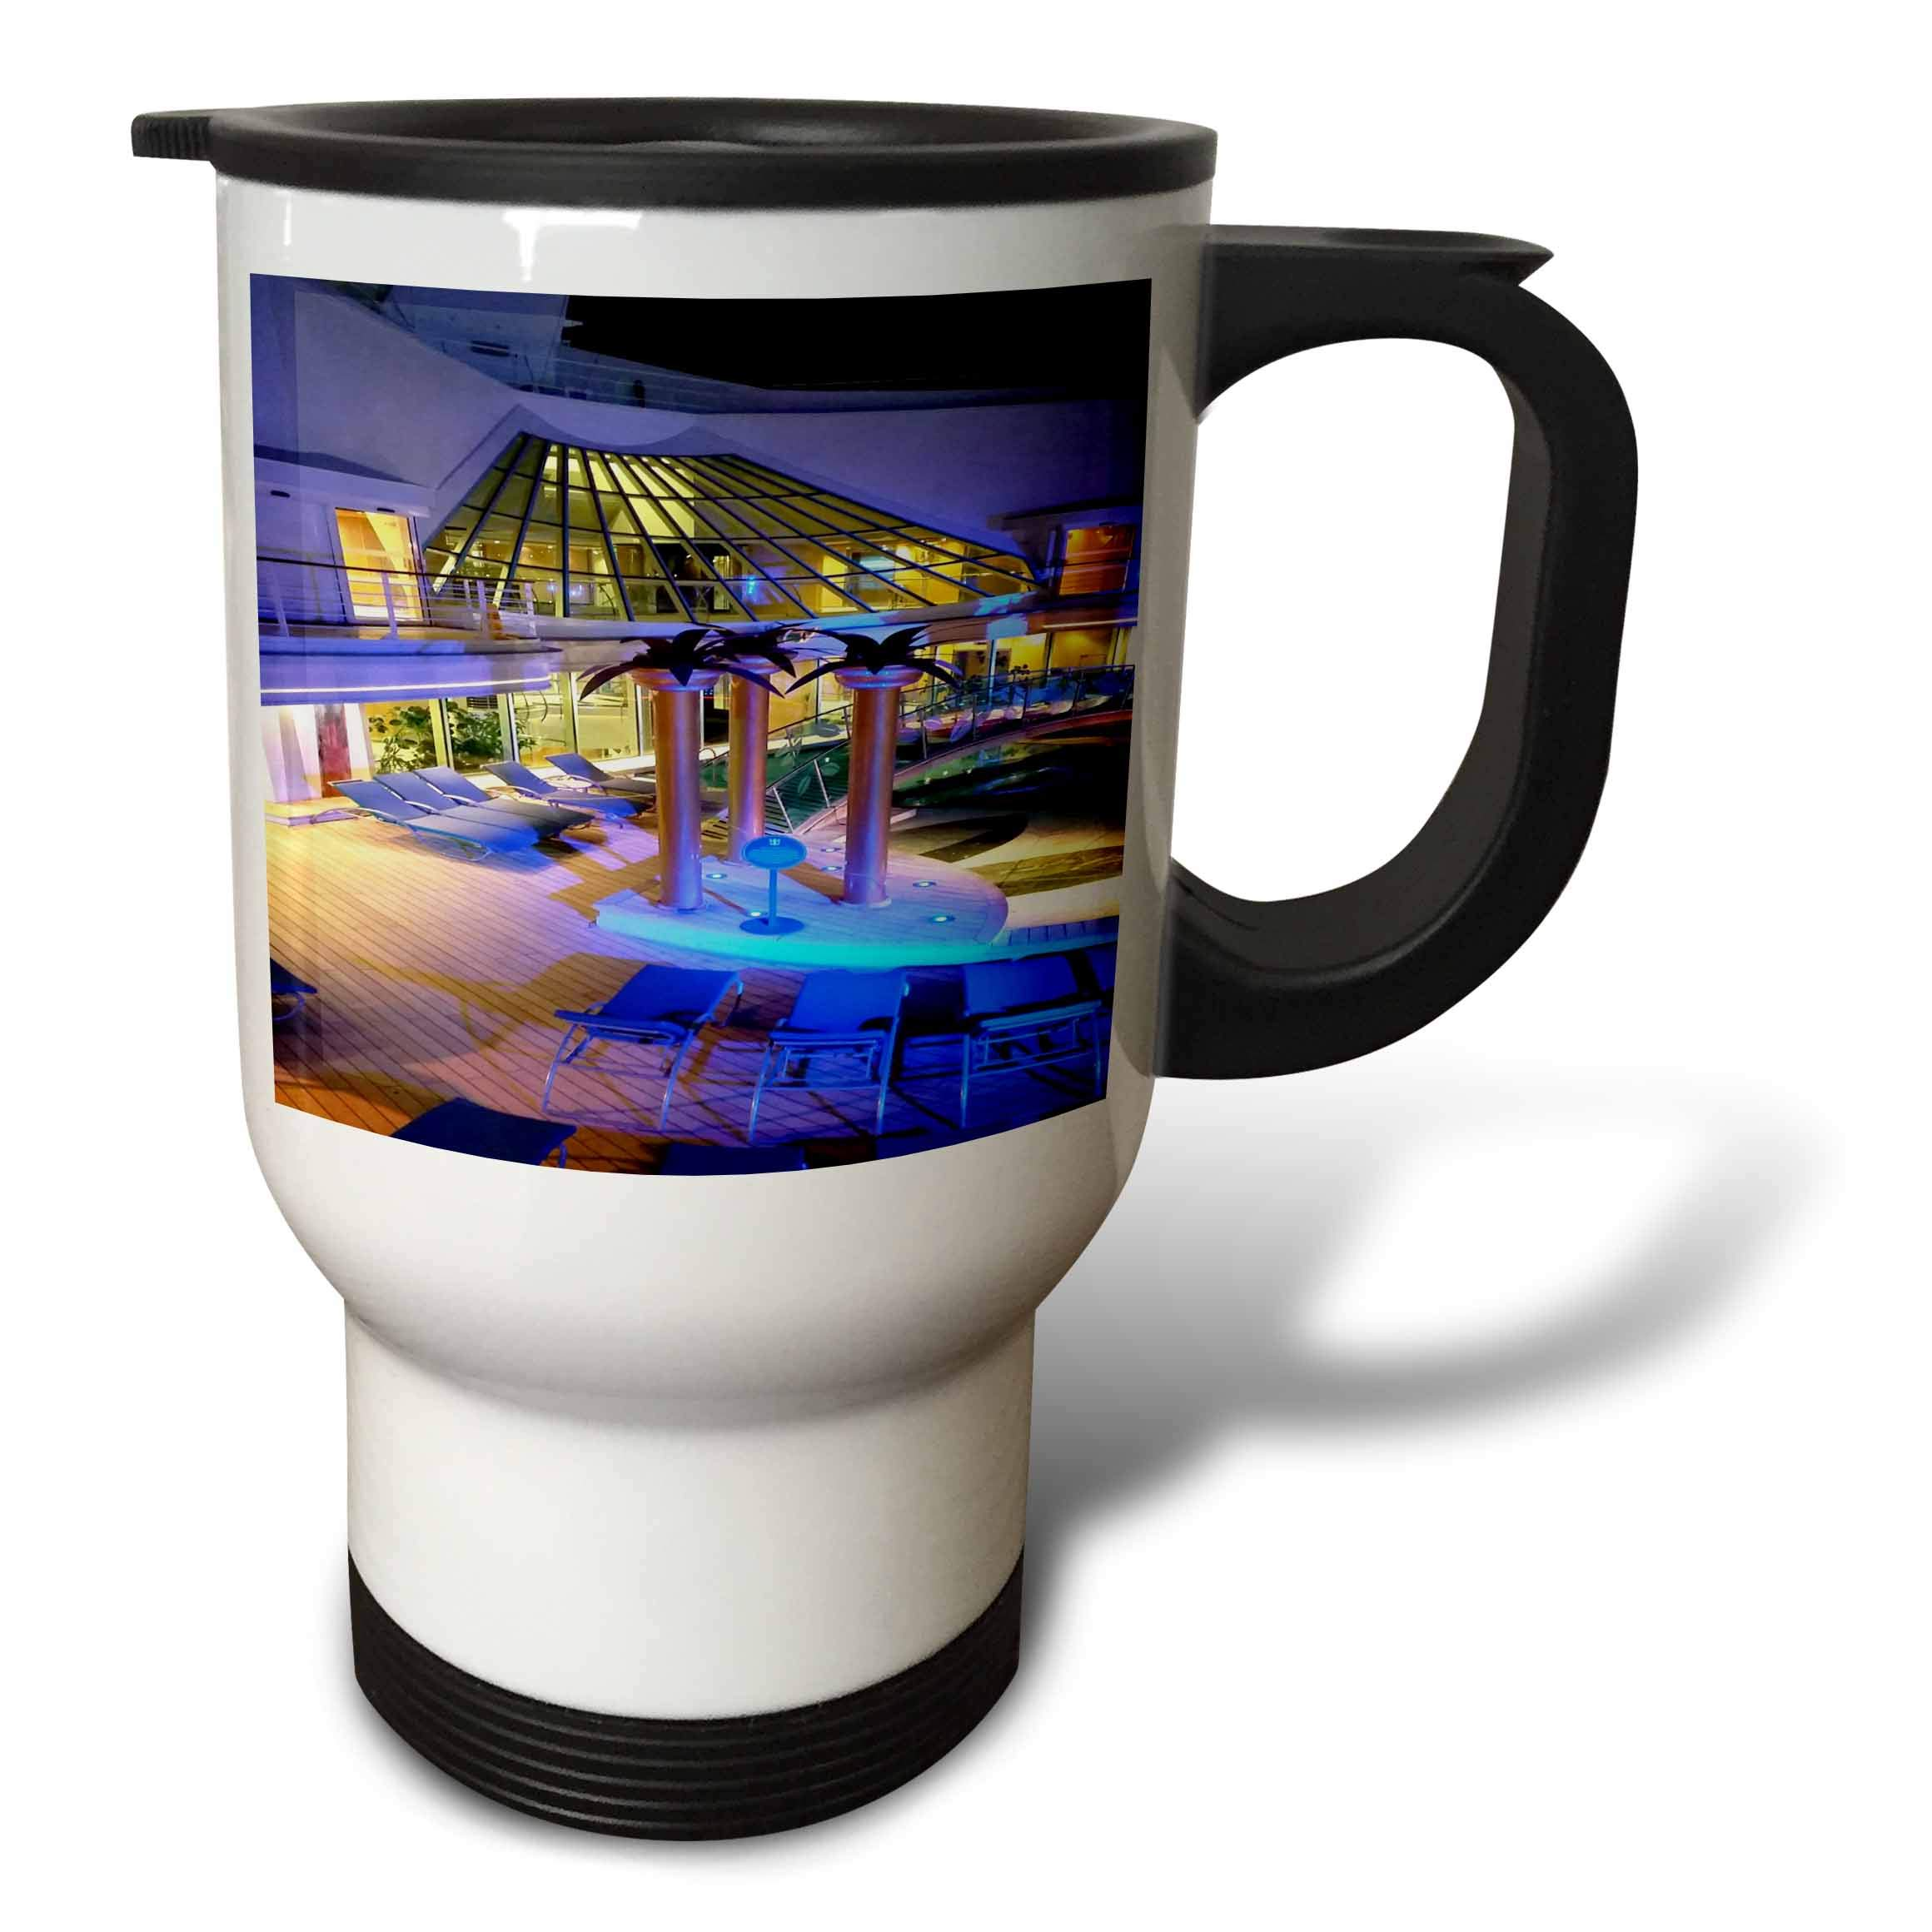 3dRose Lens Art by Florene - Cruise Ship Sites - Image of Adult Pool Area With Spa - 14oz Stainless Steel Travel Mug (tm_291436_1)